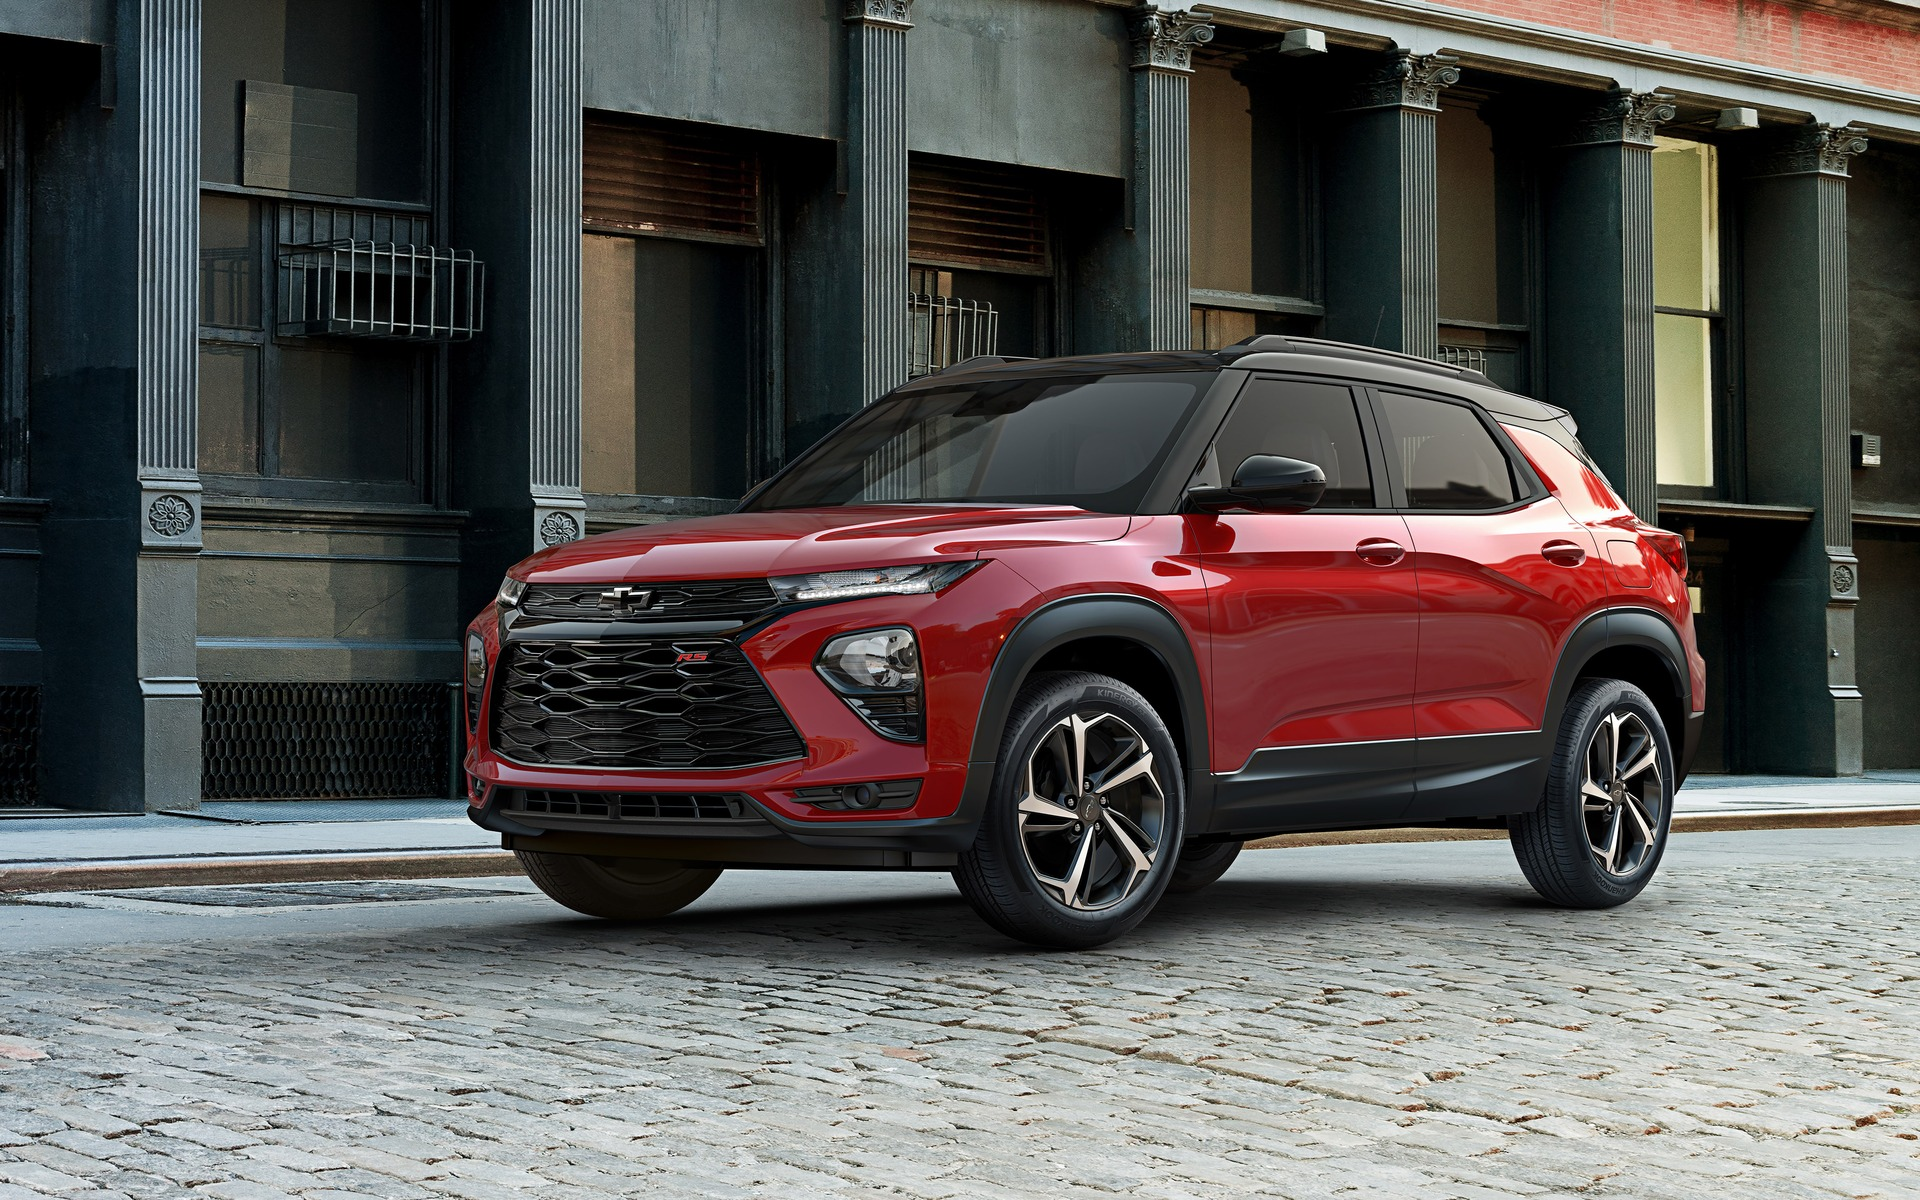 2020 Chevy Trailblazer Pricing